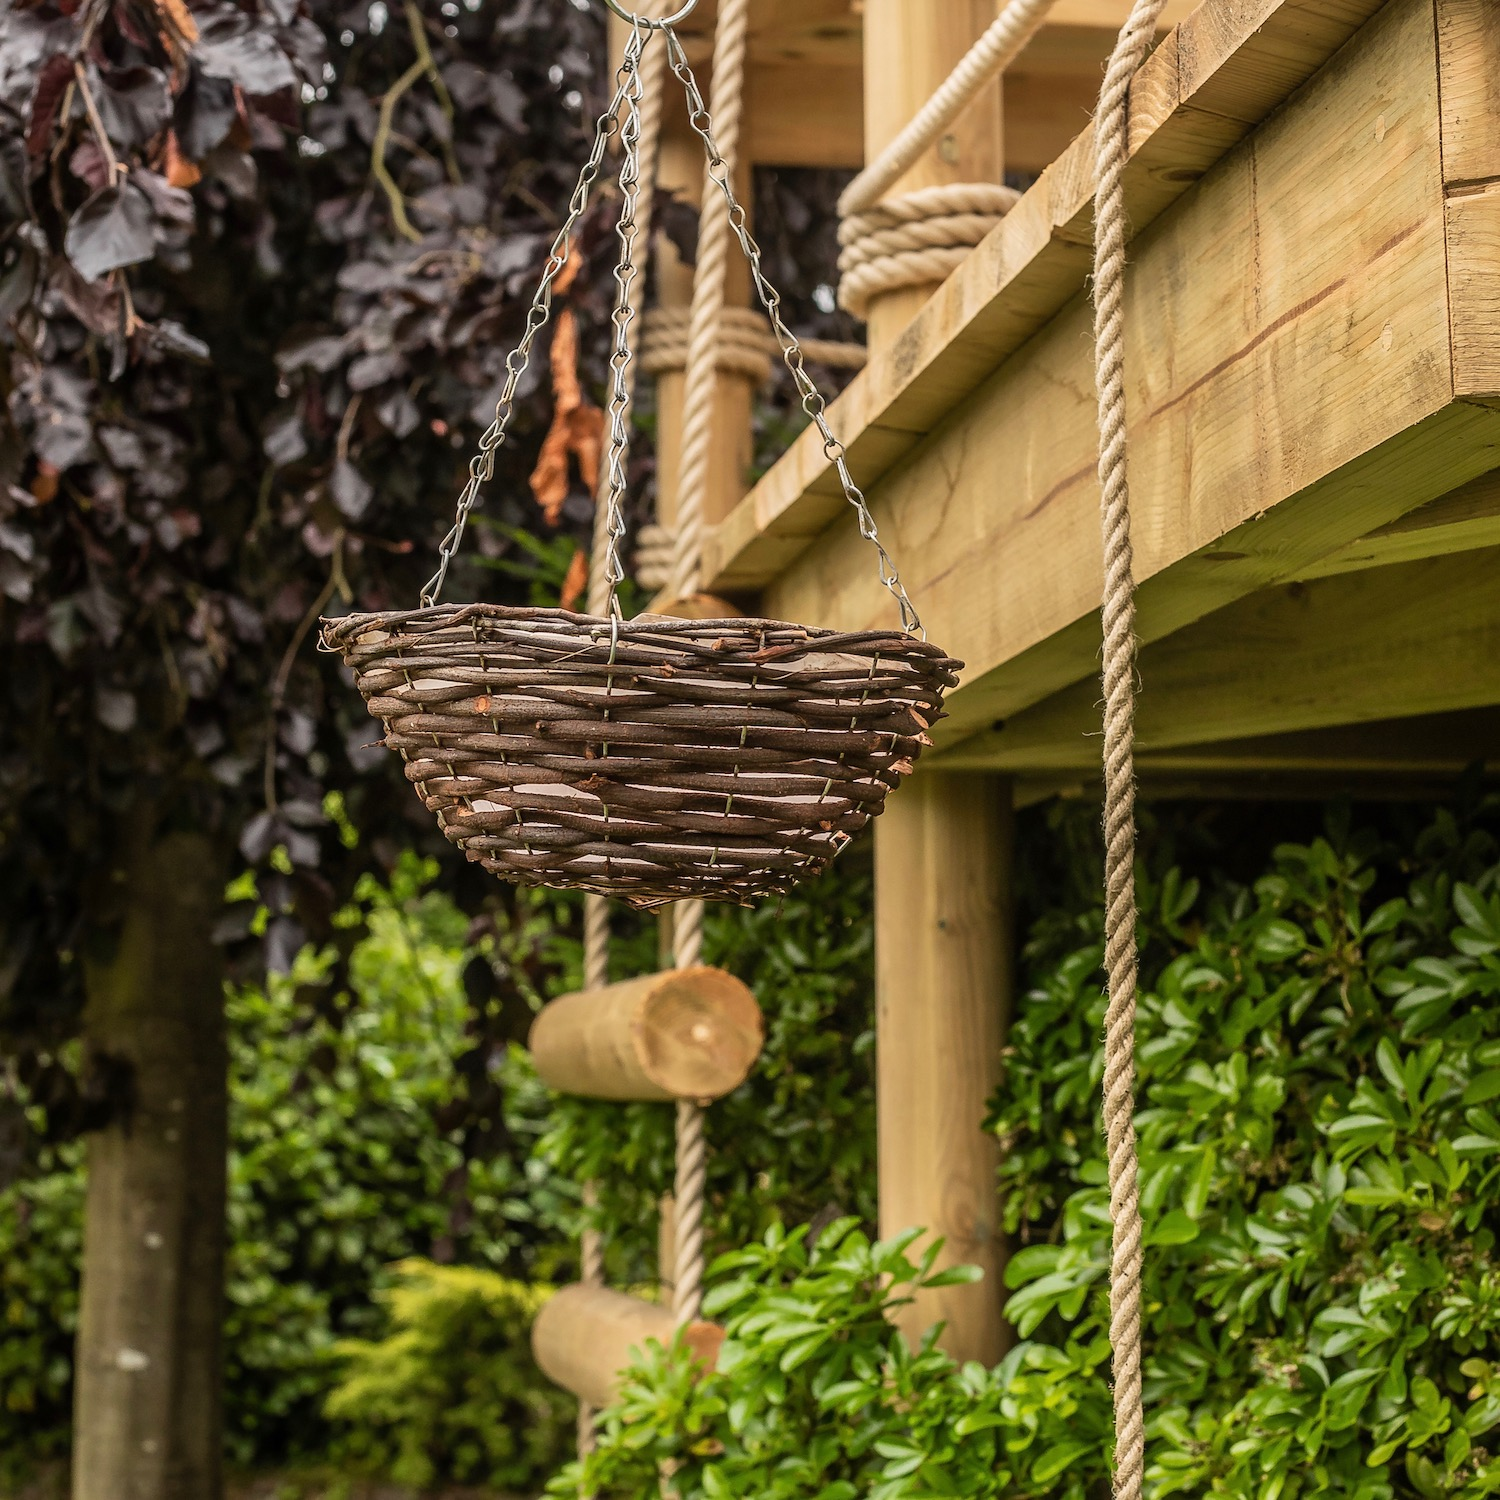 Play Add Ons And Accessories For Treehouses Decks And Platforms Treehouses Rope Bridges Treetop Walkways And Nest Swings